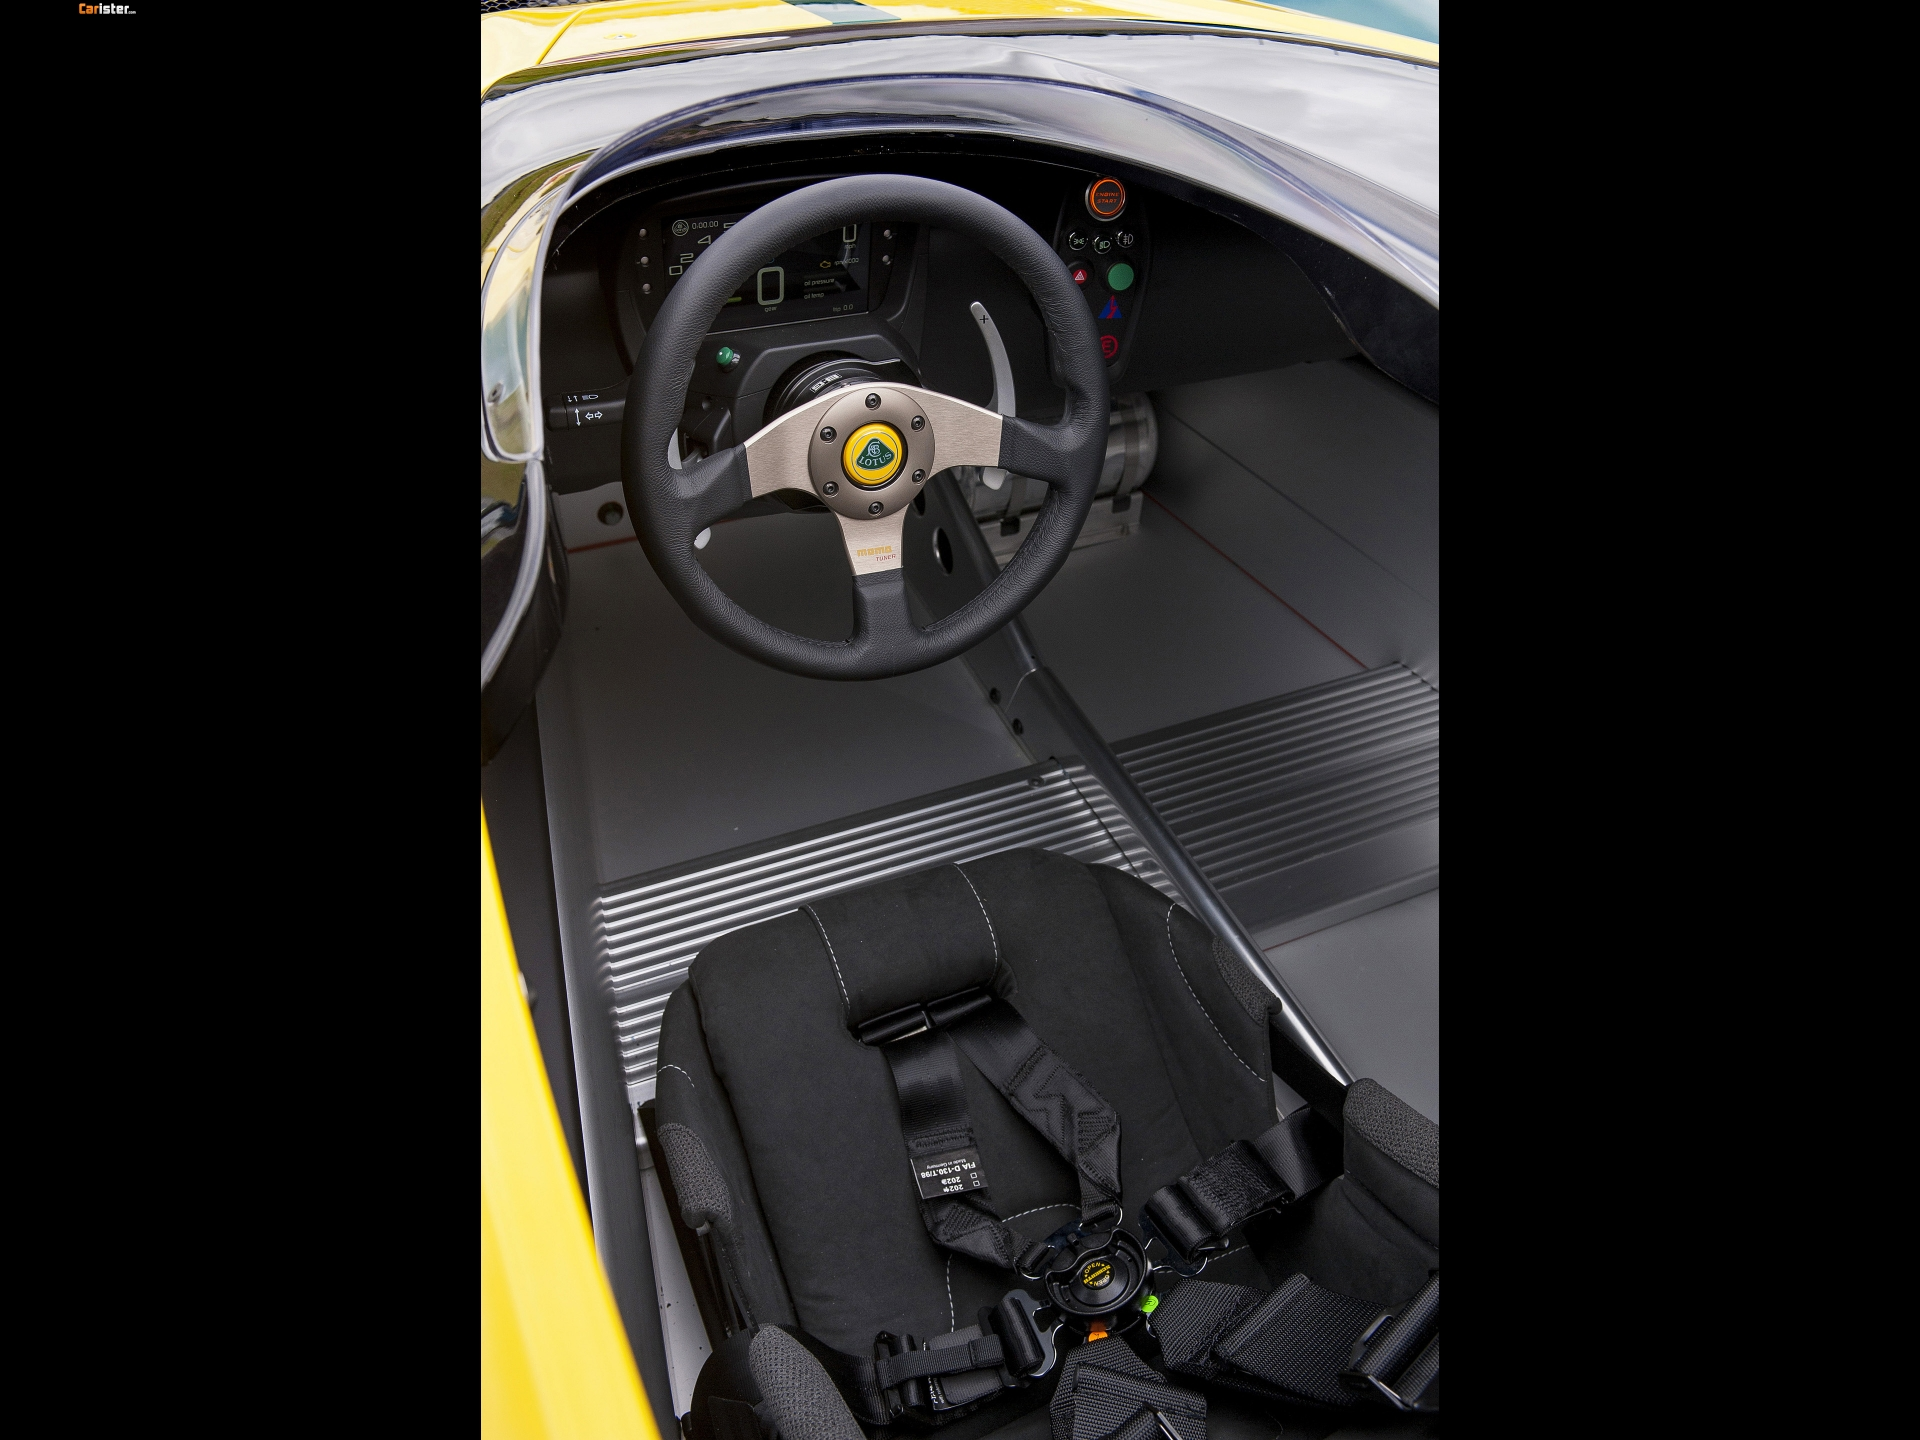 Lotus 3-Eleven 2016 - Photo 13 - Taille: 1920x1440